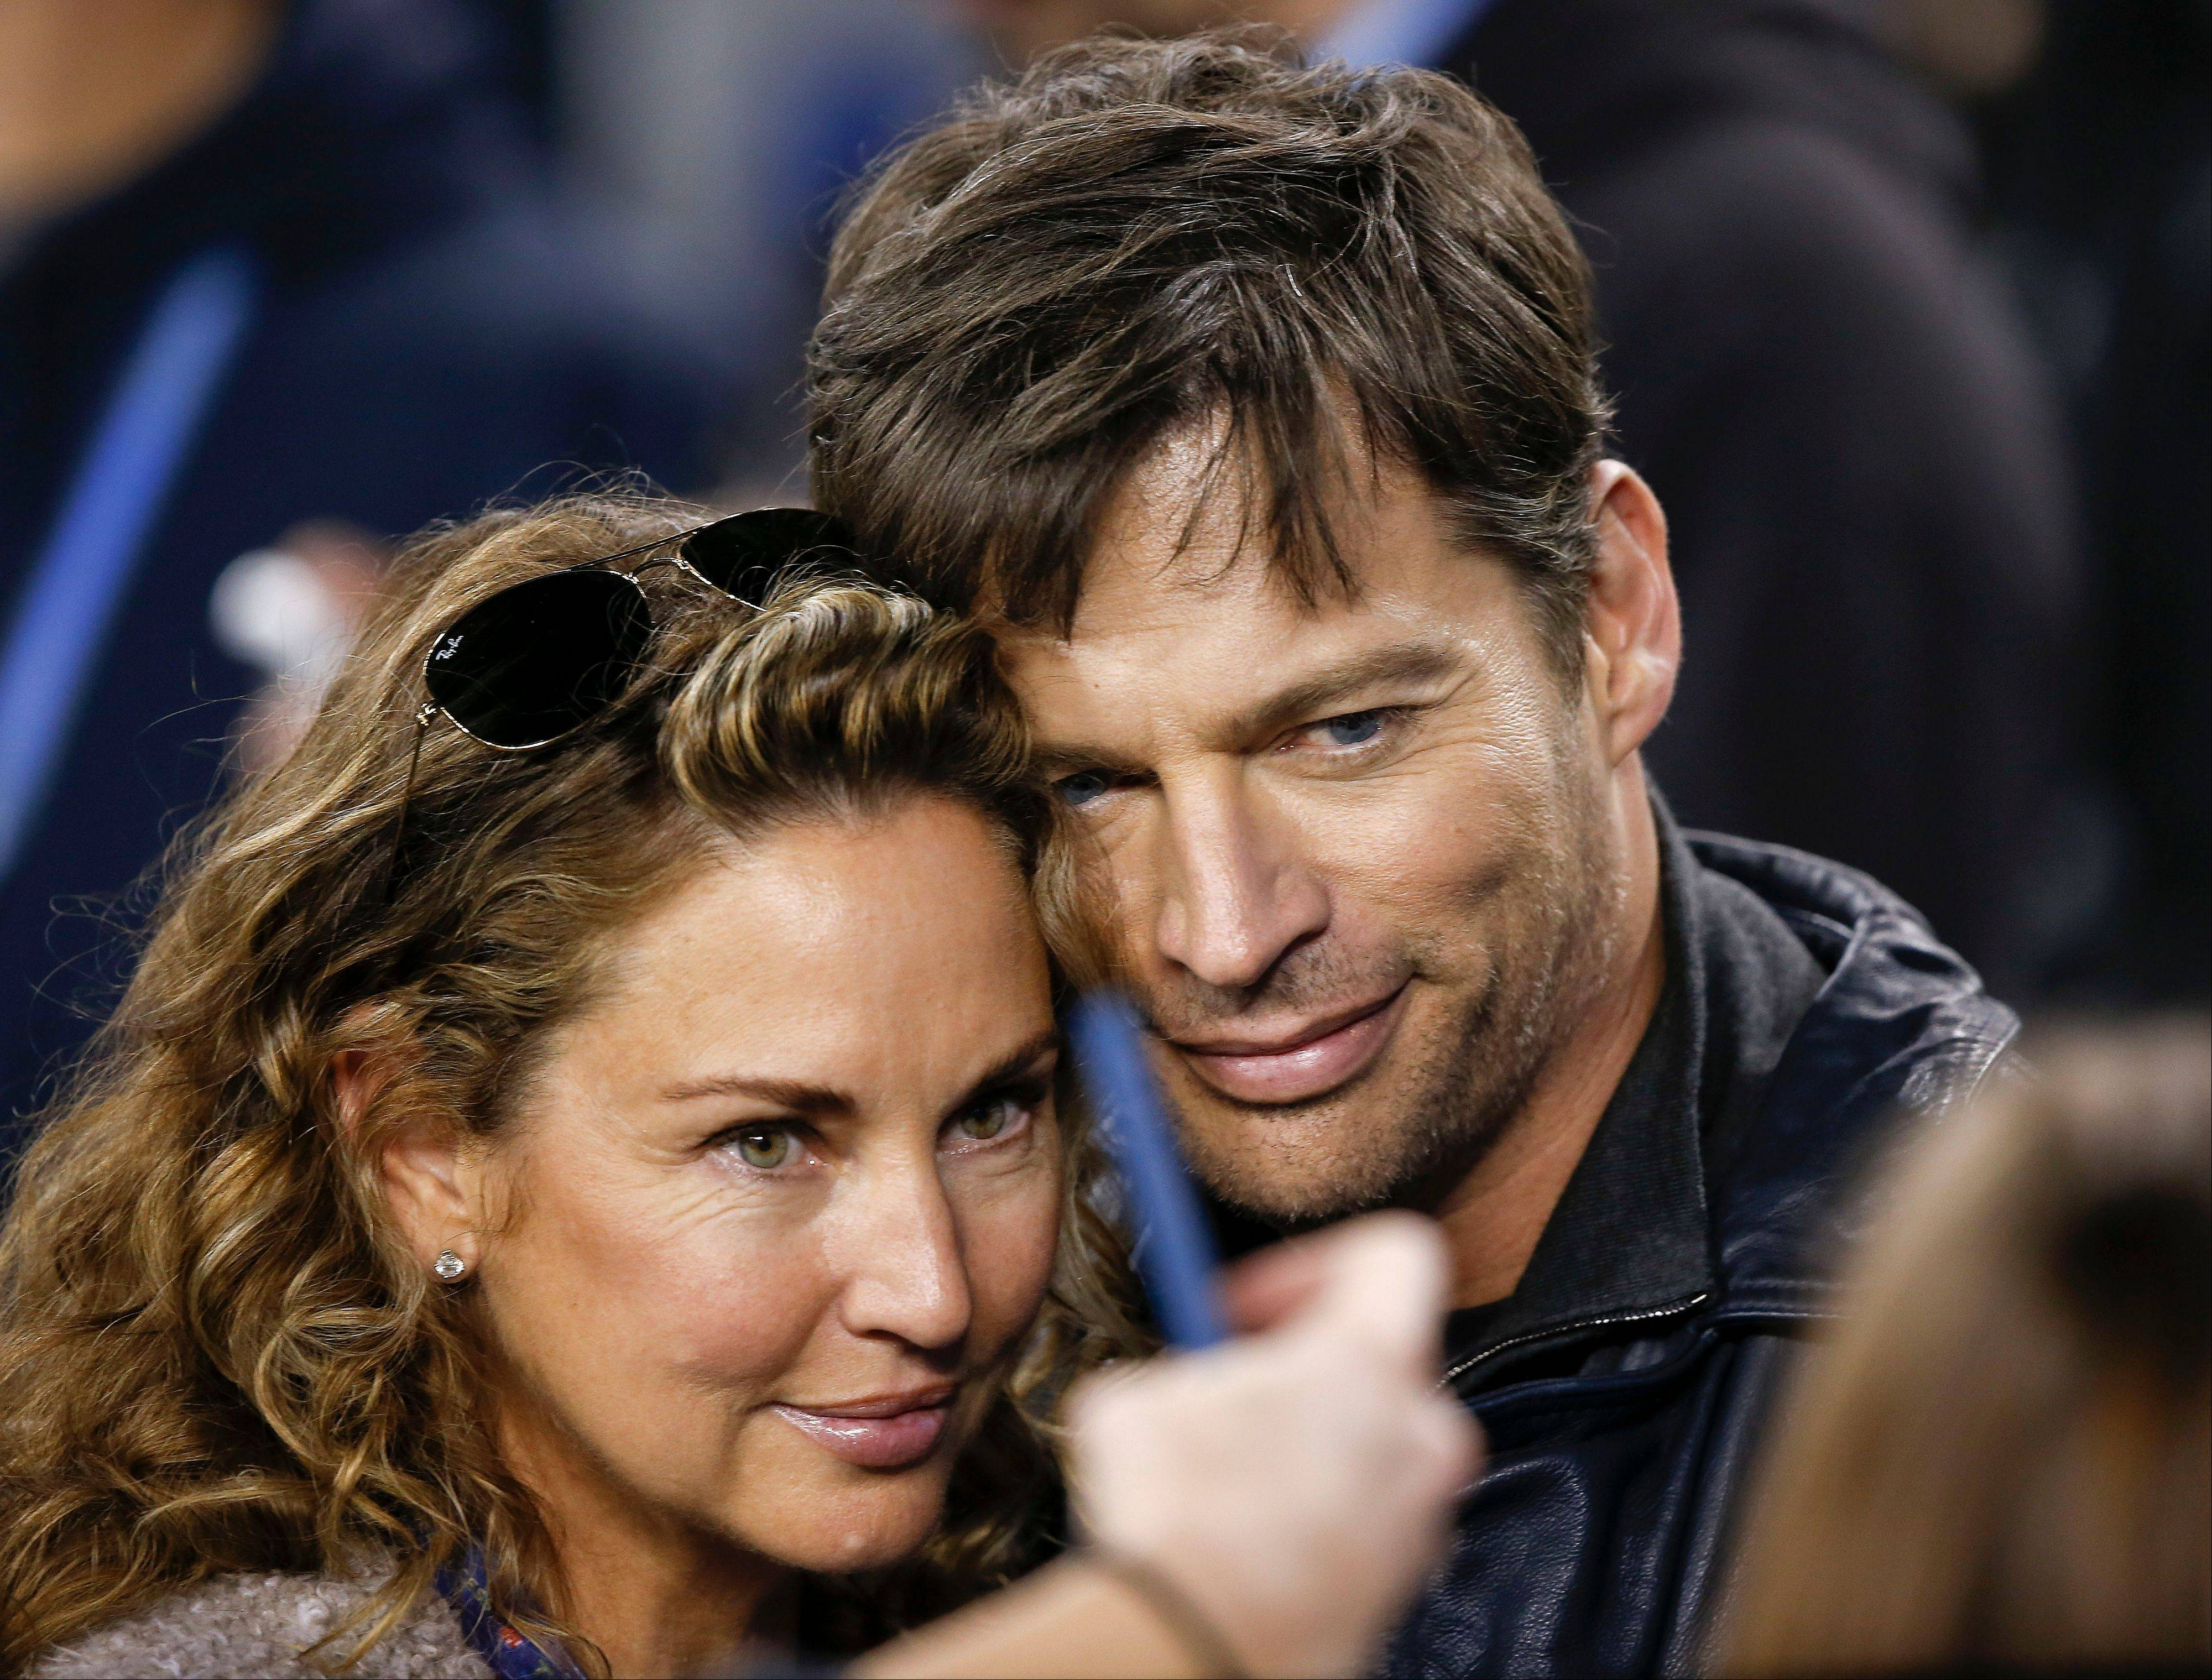 Harry Connick, Jr., right, poses for a picture with his wife, Jill Goodacre, before the NFL Super Bowl XLVIII football game.